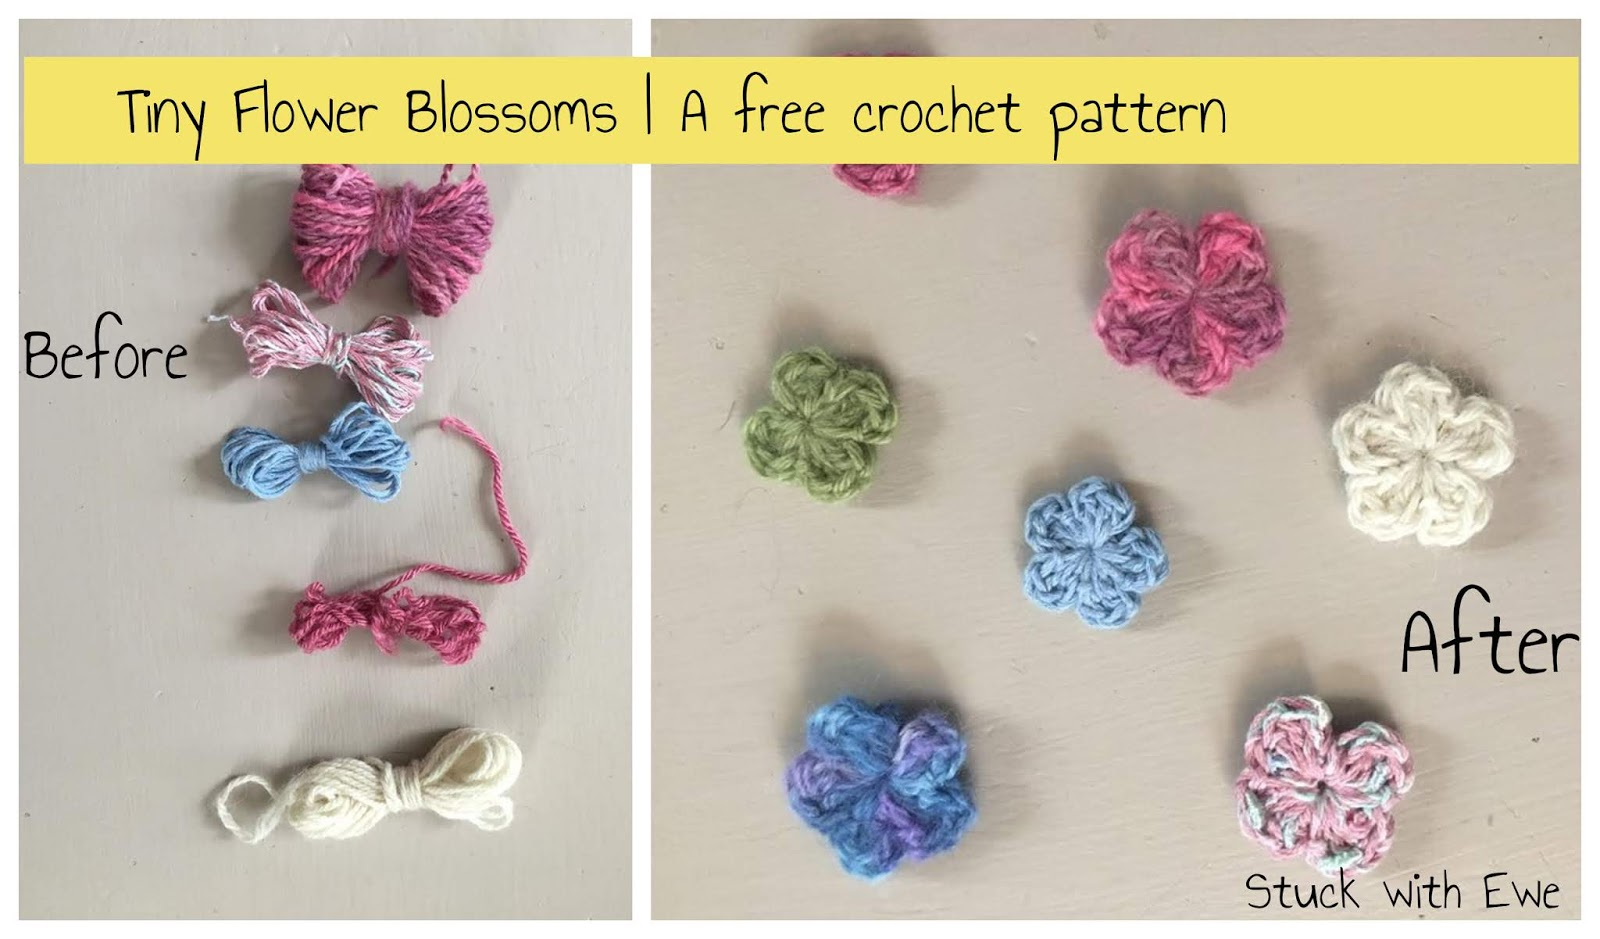 Tiny Flower Blossoms A Free Quick Crochet Pattern